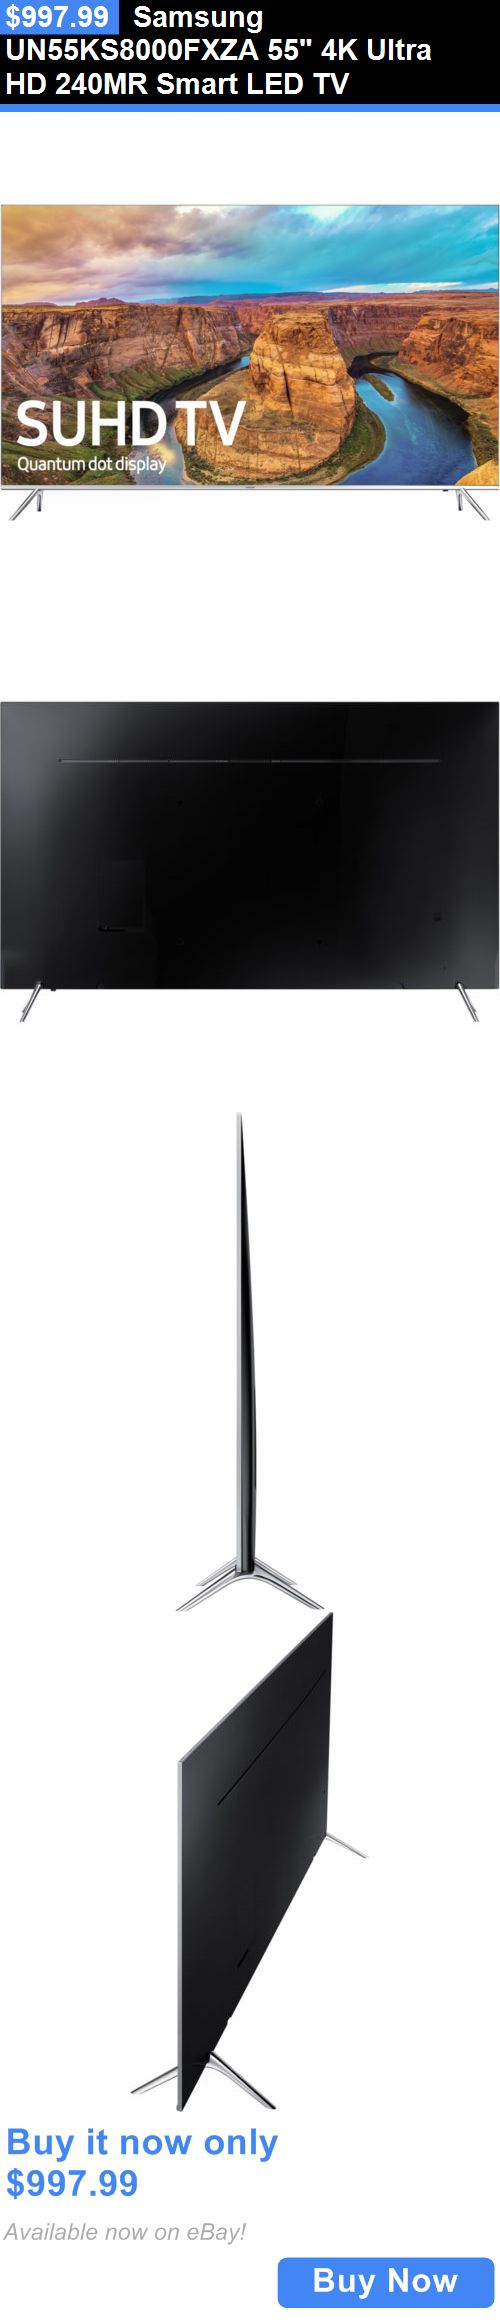 Simple Smart TV Samsung Unksfxza K Ultra Hd Mr Smart Led Tv BUY IT NOW